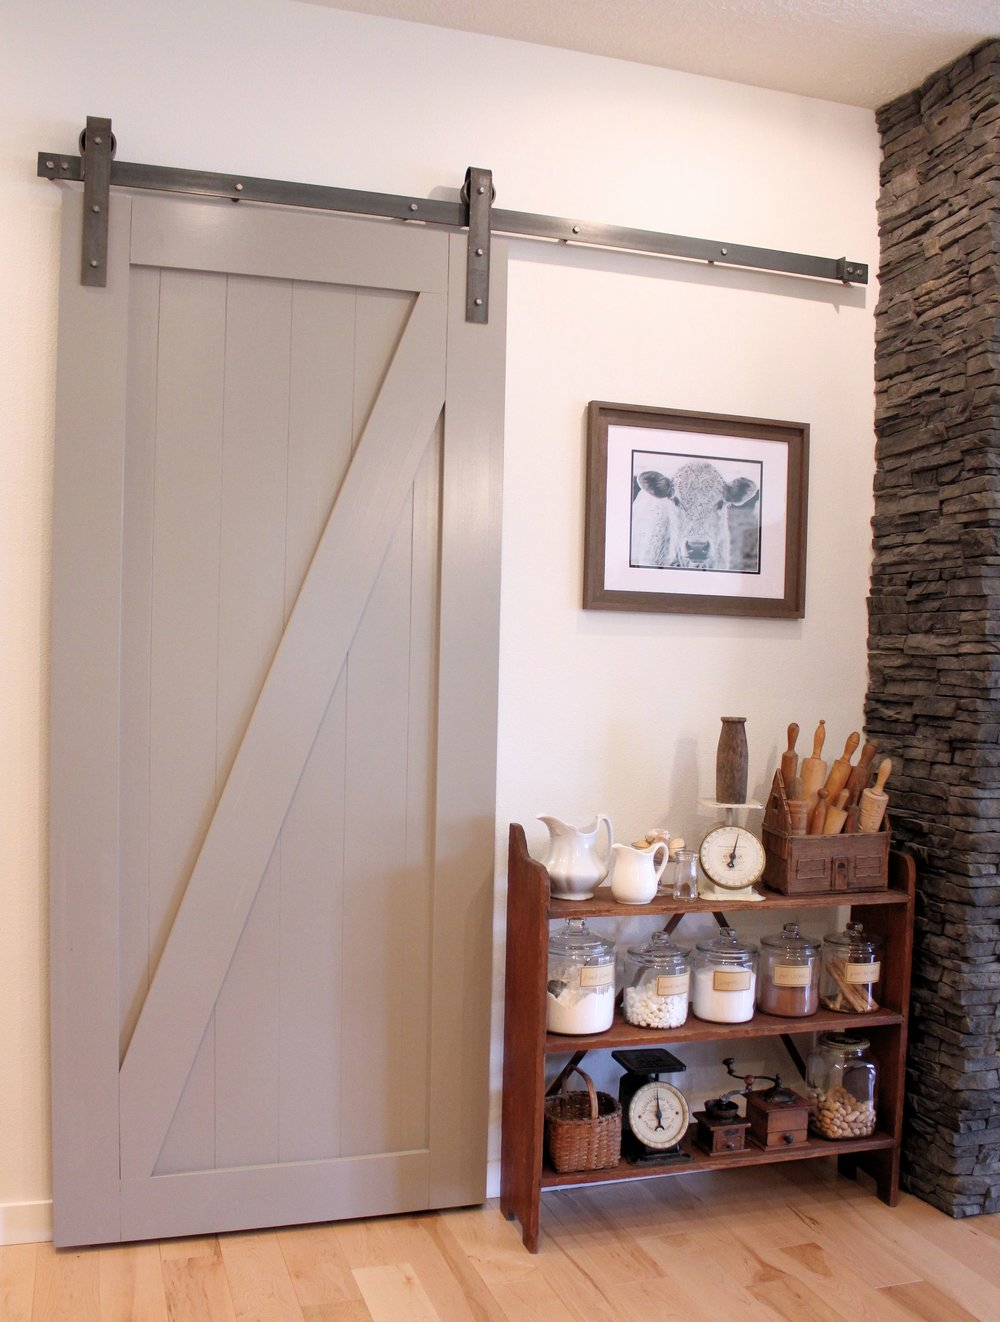 Barn Doors diy sliding barn doors photographs : Weekend DIY Sliding Barn Door — WHERE SISTERS GATHER